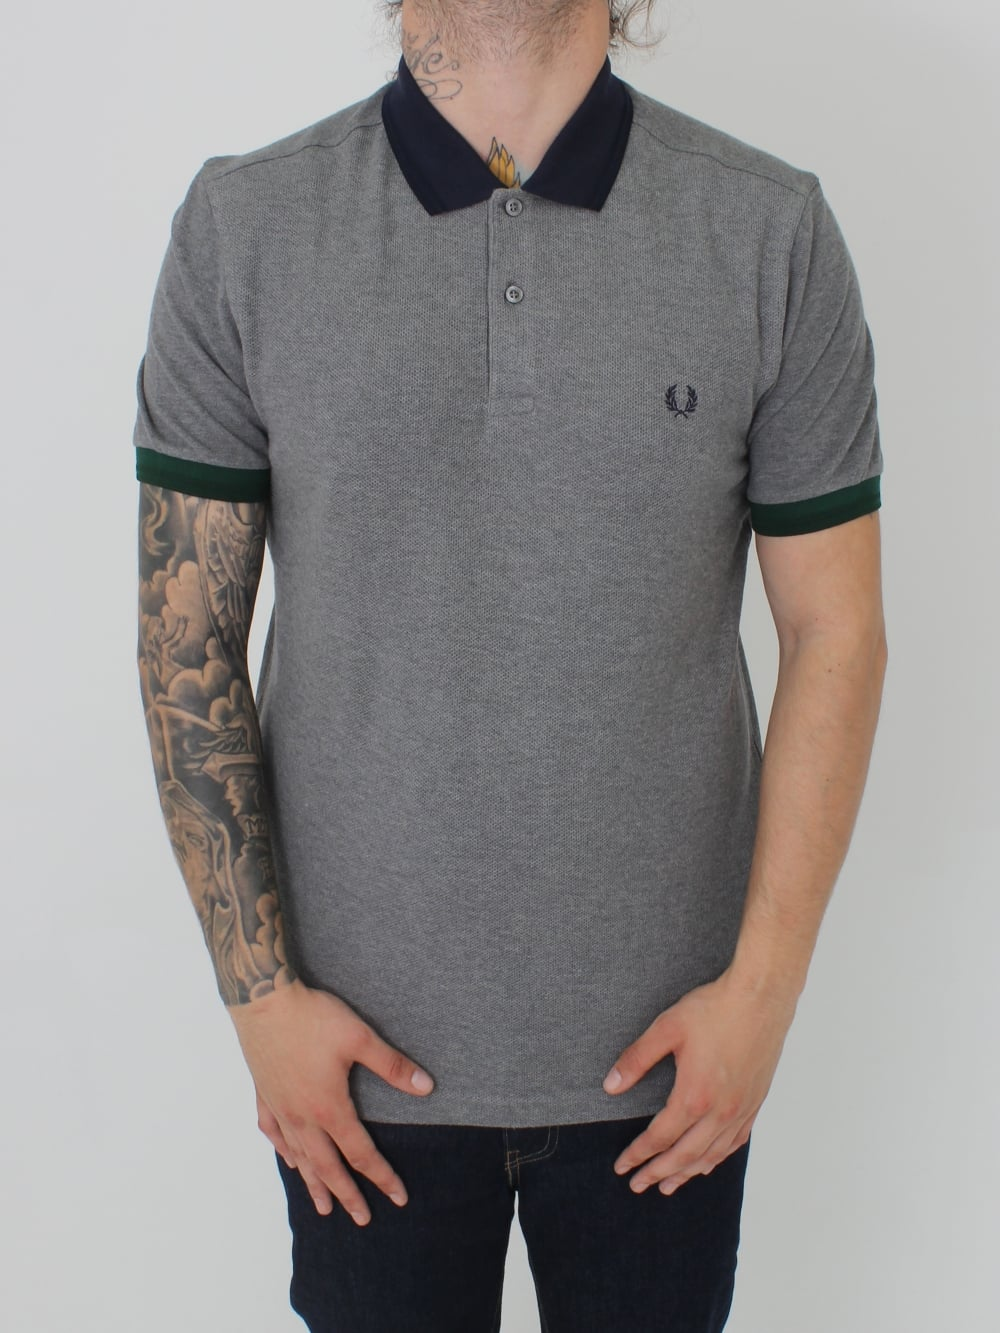 904d85e0f Fred Perry Colour Block Pique Polo in Grey Marle - Northern Threads